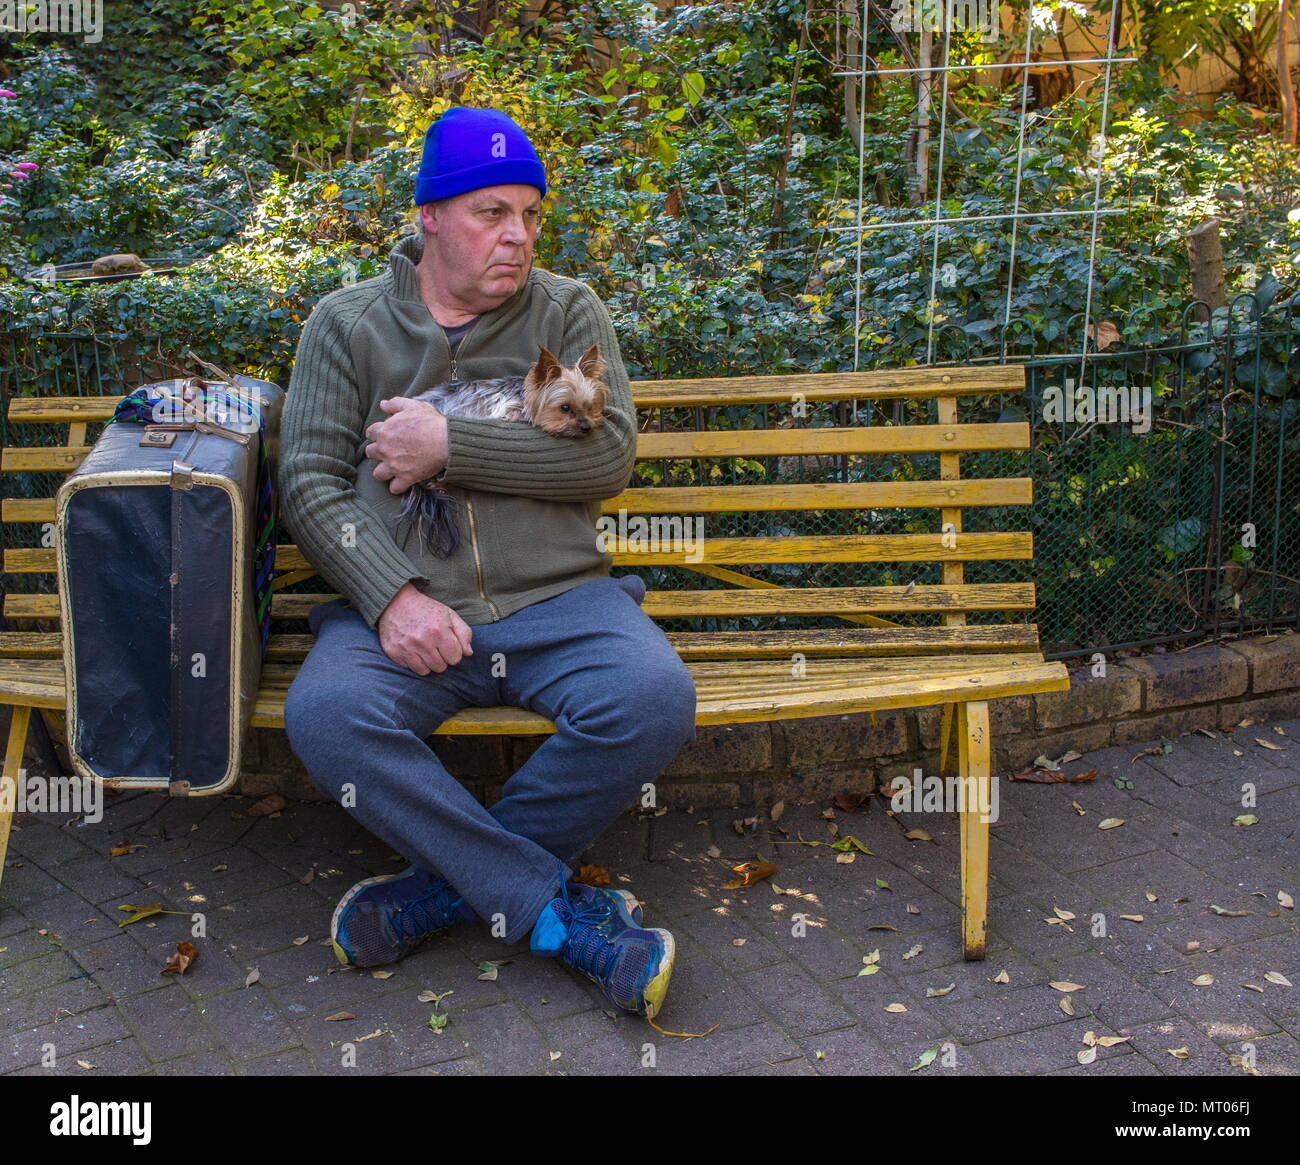 Homeless caucasian man with his small dog and his belongings sit on a yellow bench in a park image with copy space in landscape format - Stock Image